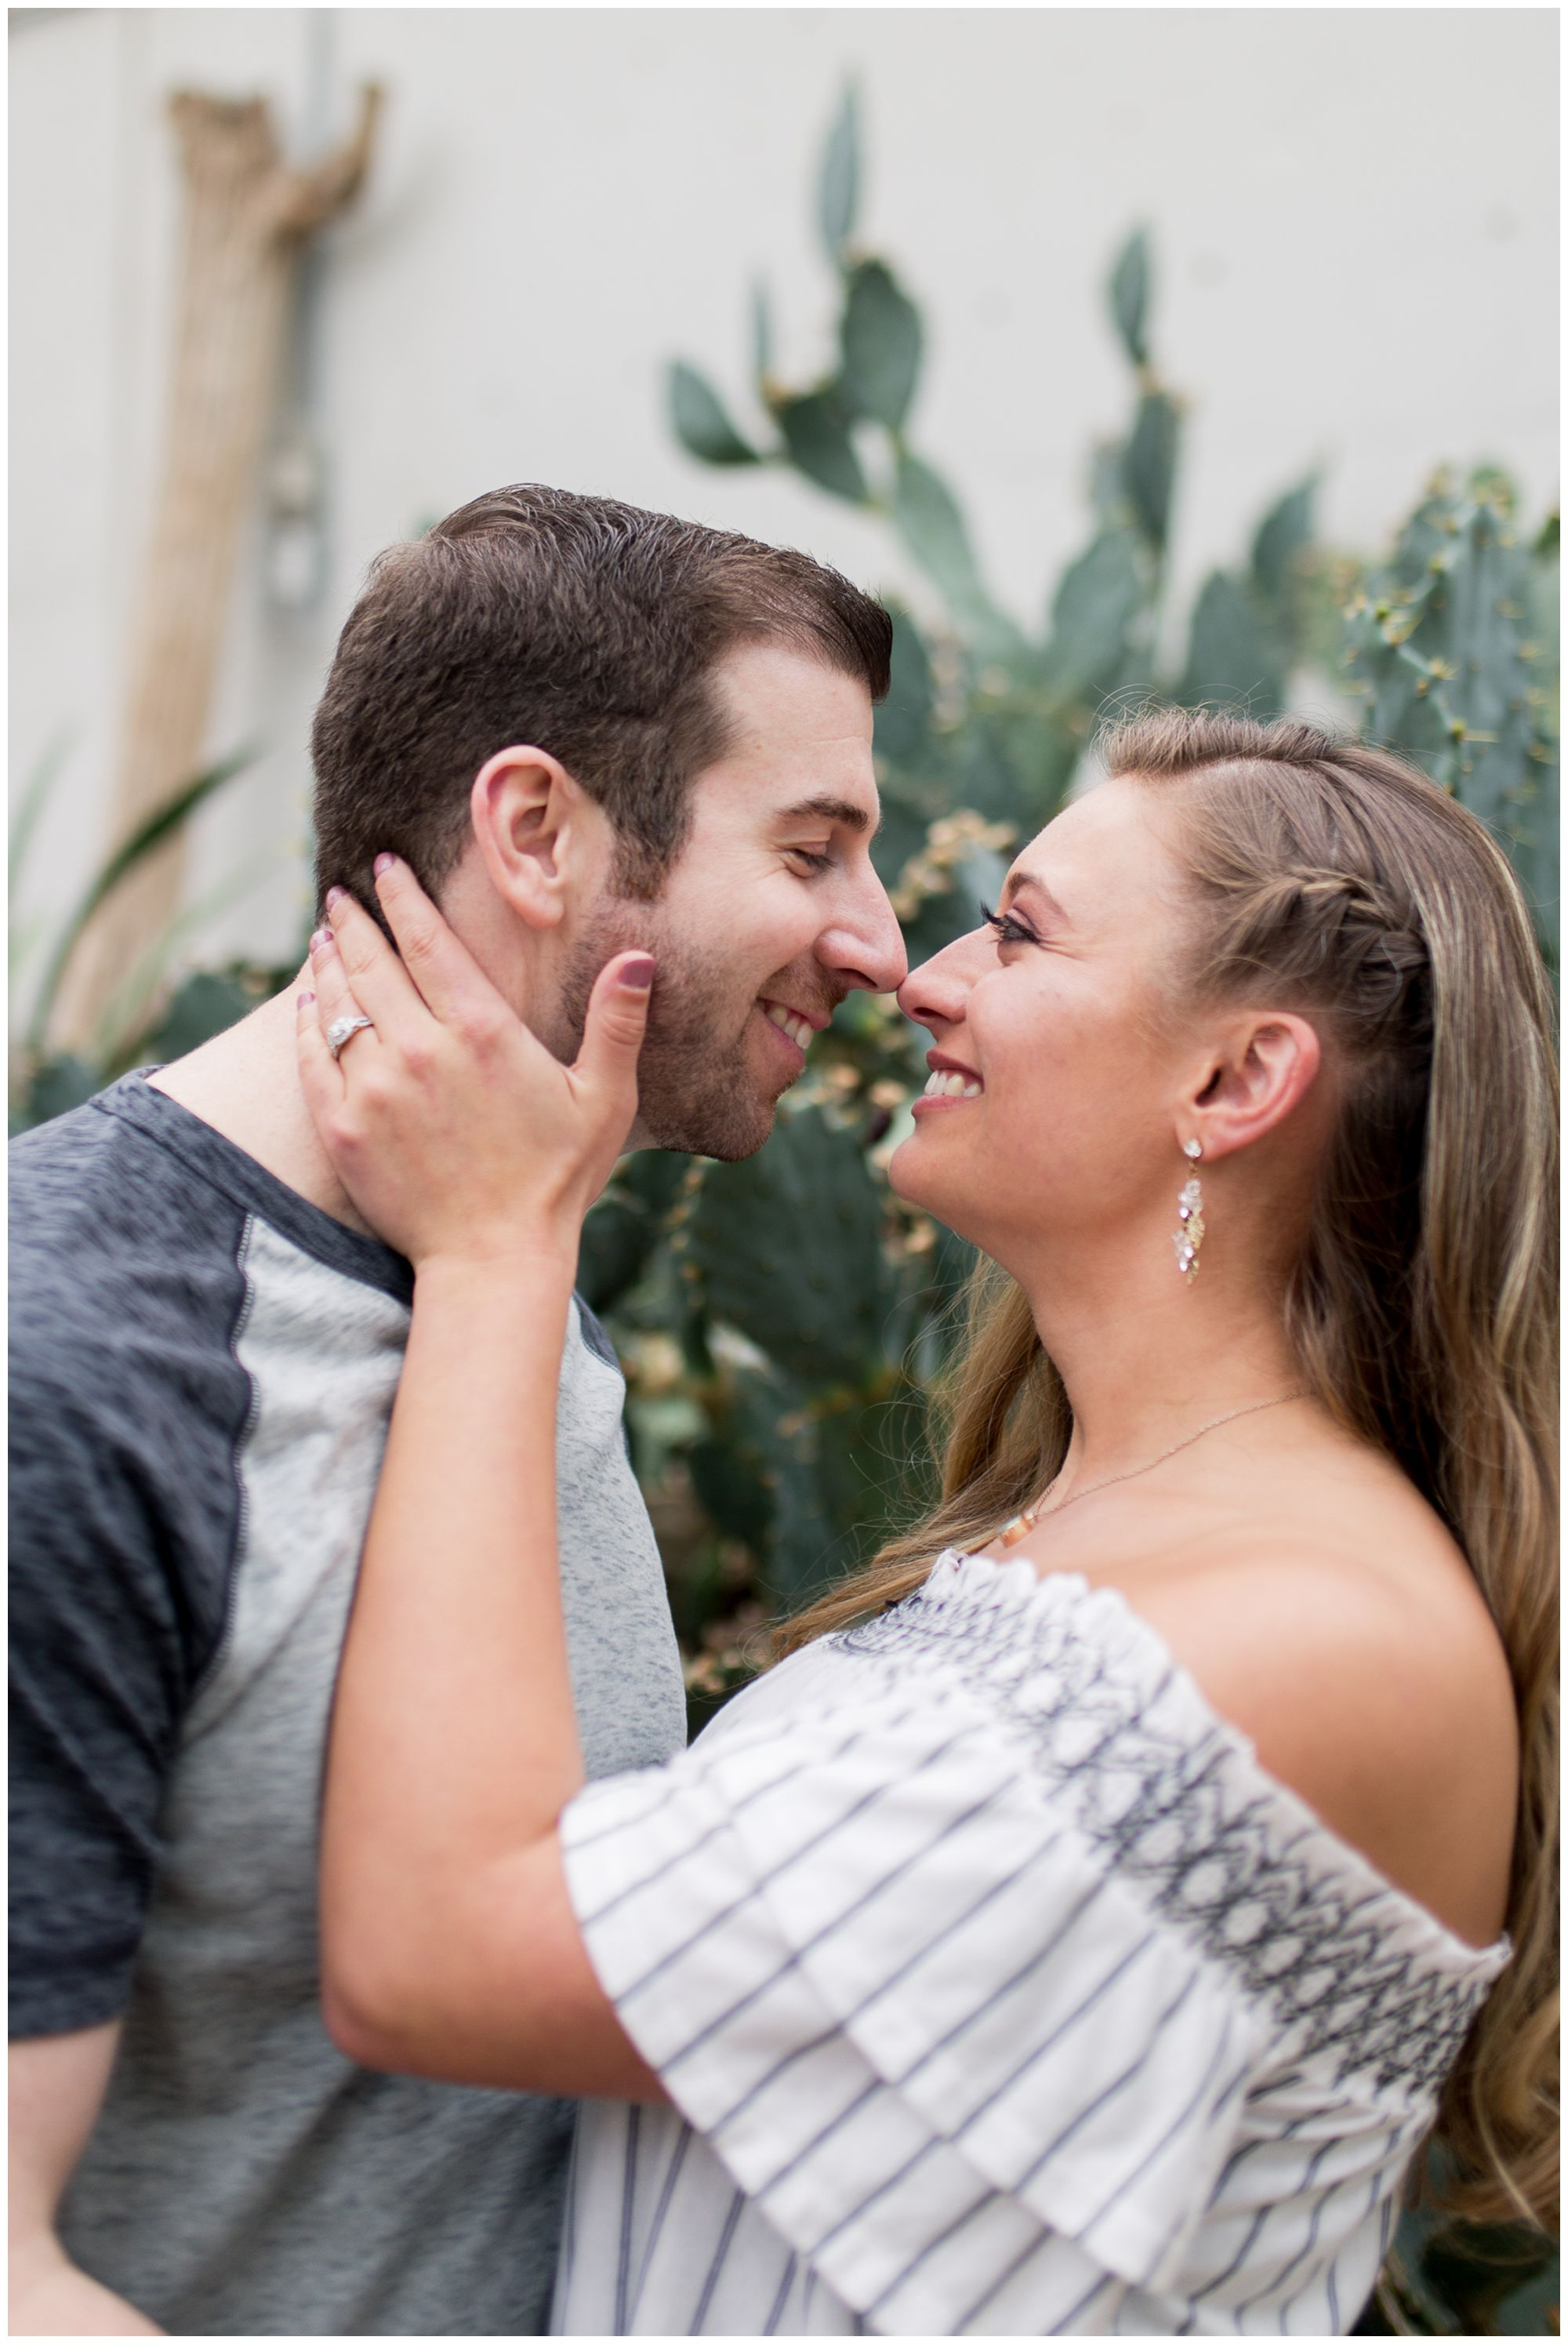 Fort Wayne wedding photographer at Foellinger-Freimann Botanical Conservatory for engagement session